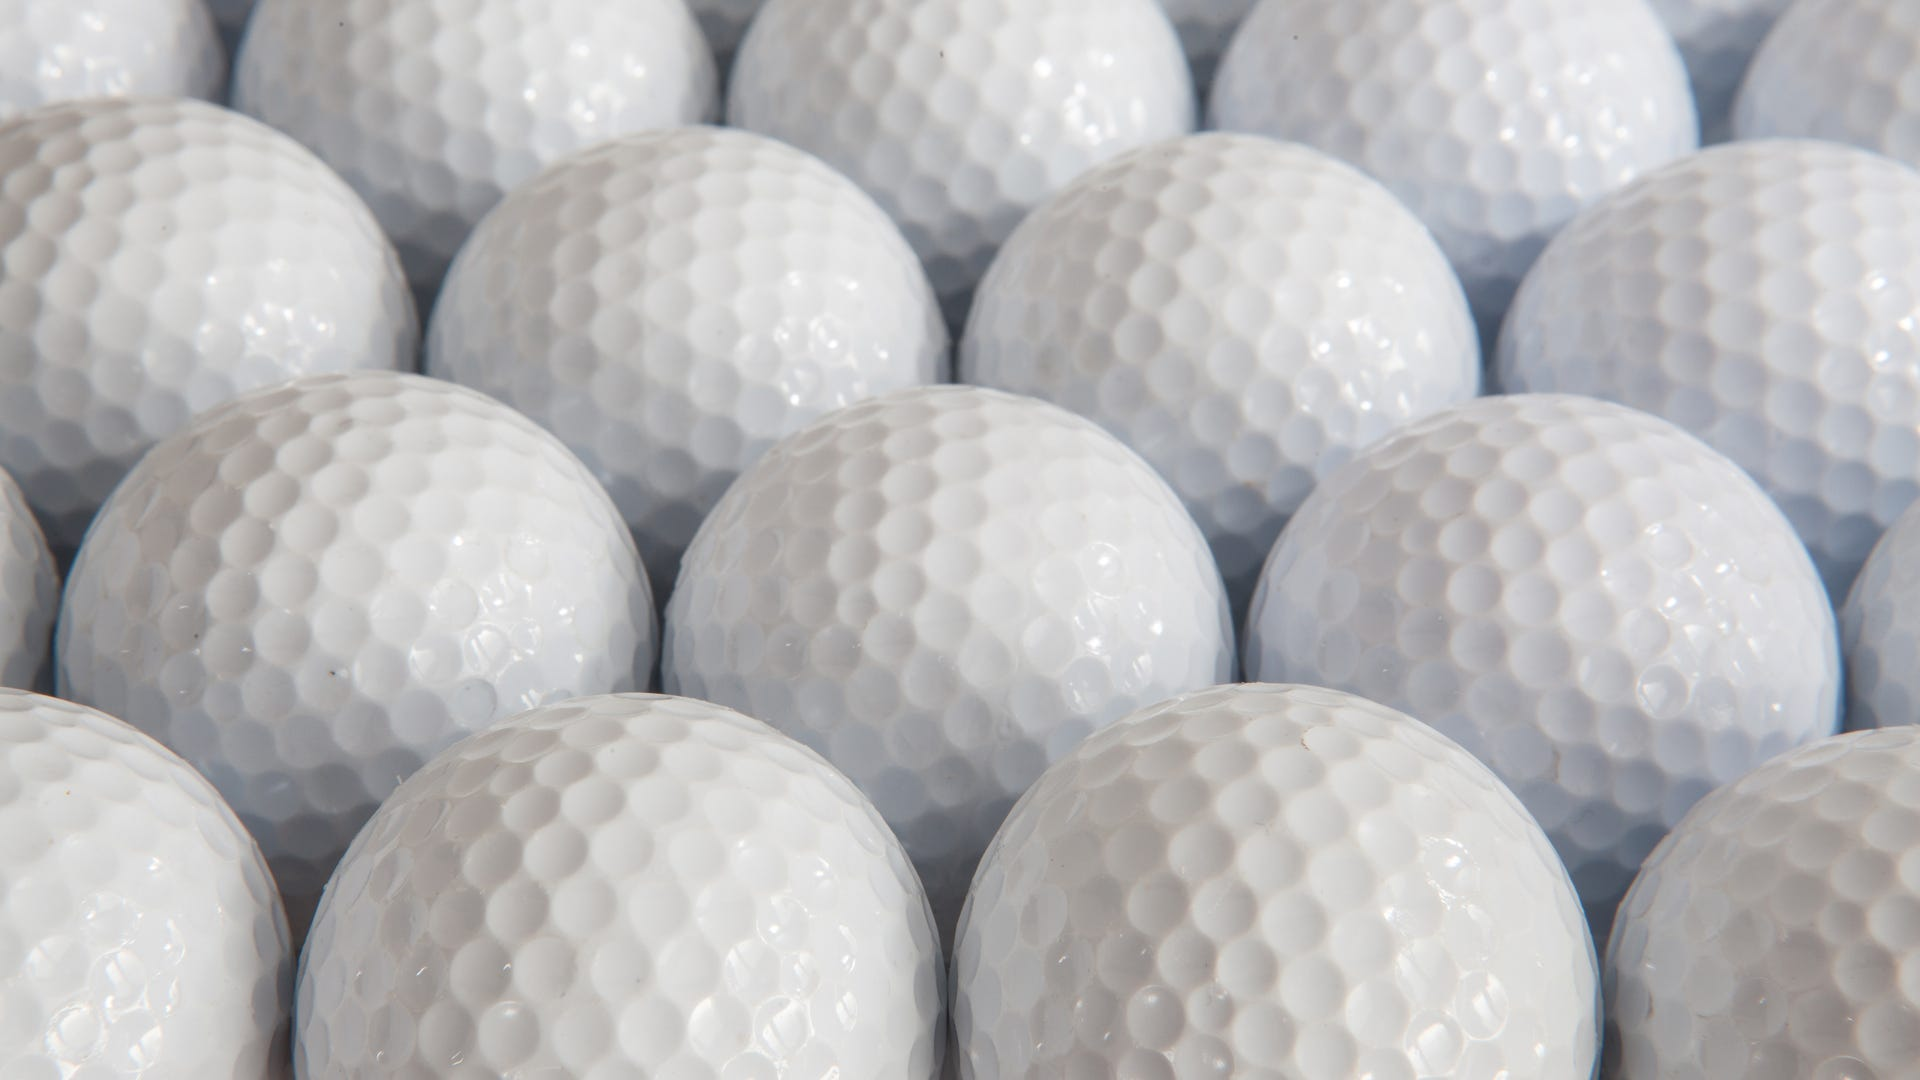 White golf balls lined up in a box.